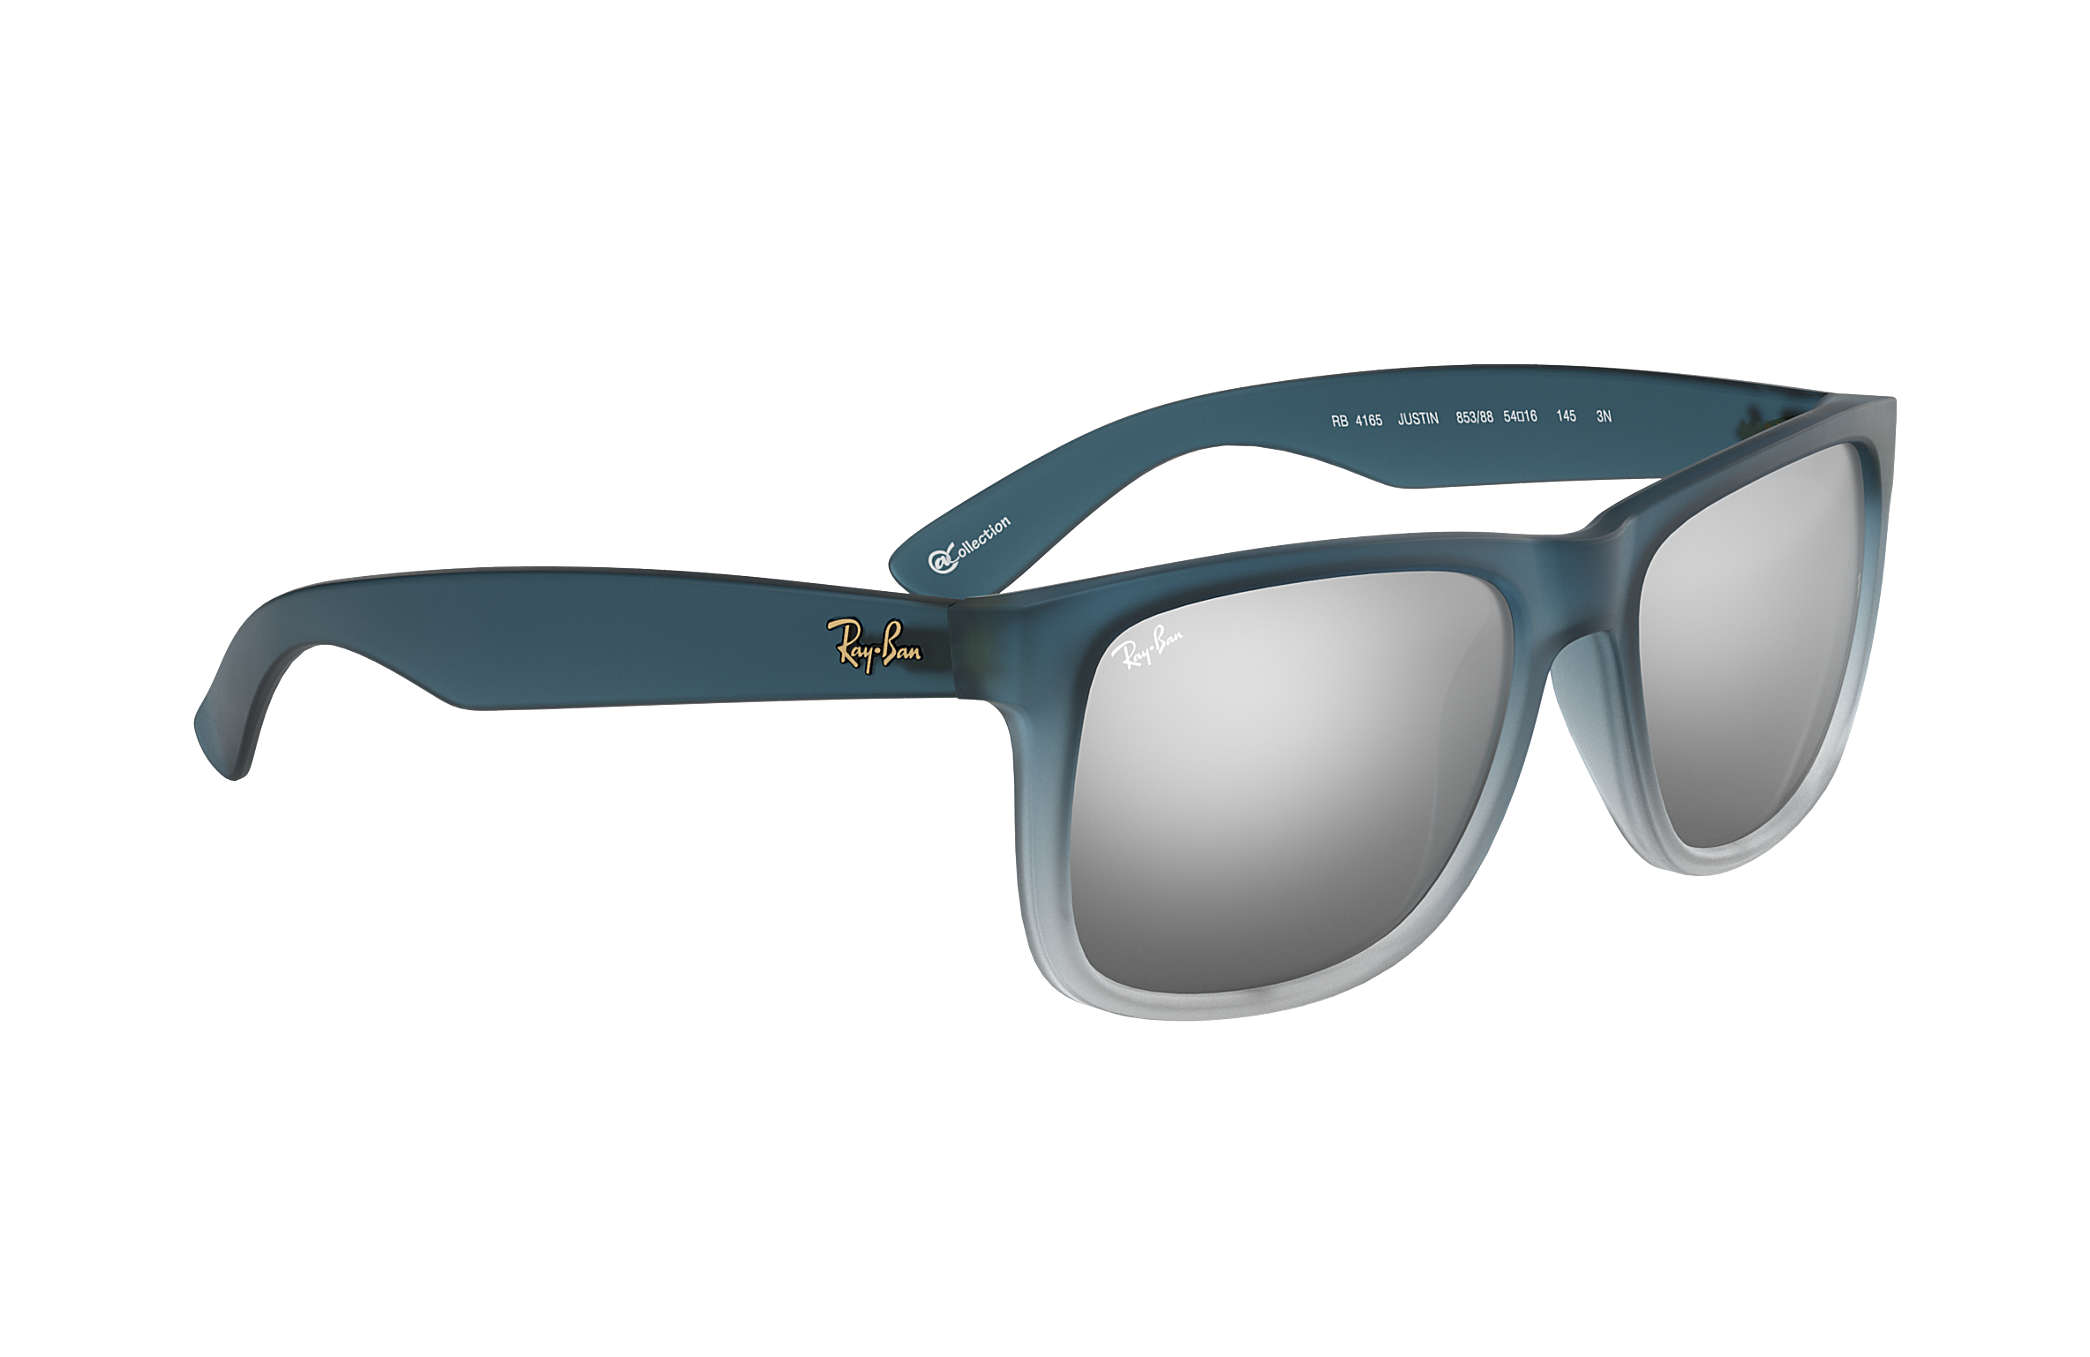 ray ban justin collection rb4165 azul nylon lentes plata rh ray ban com